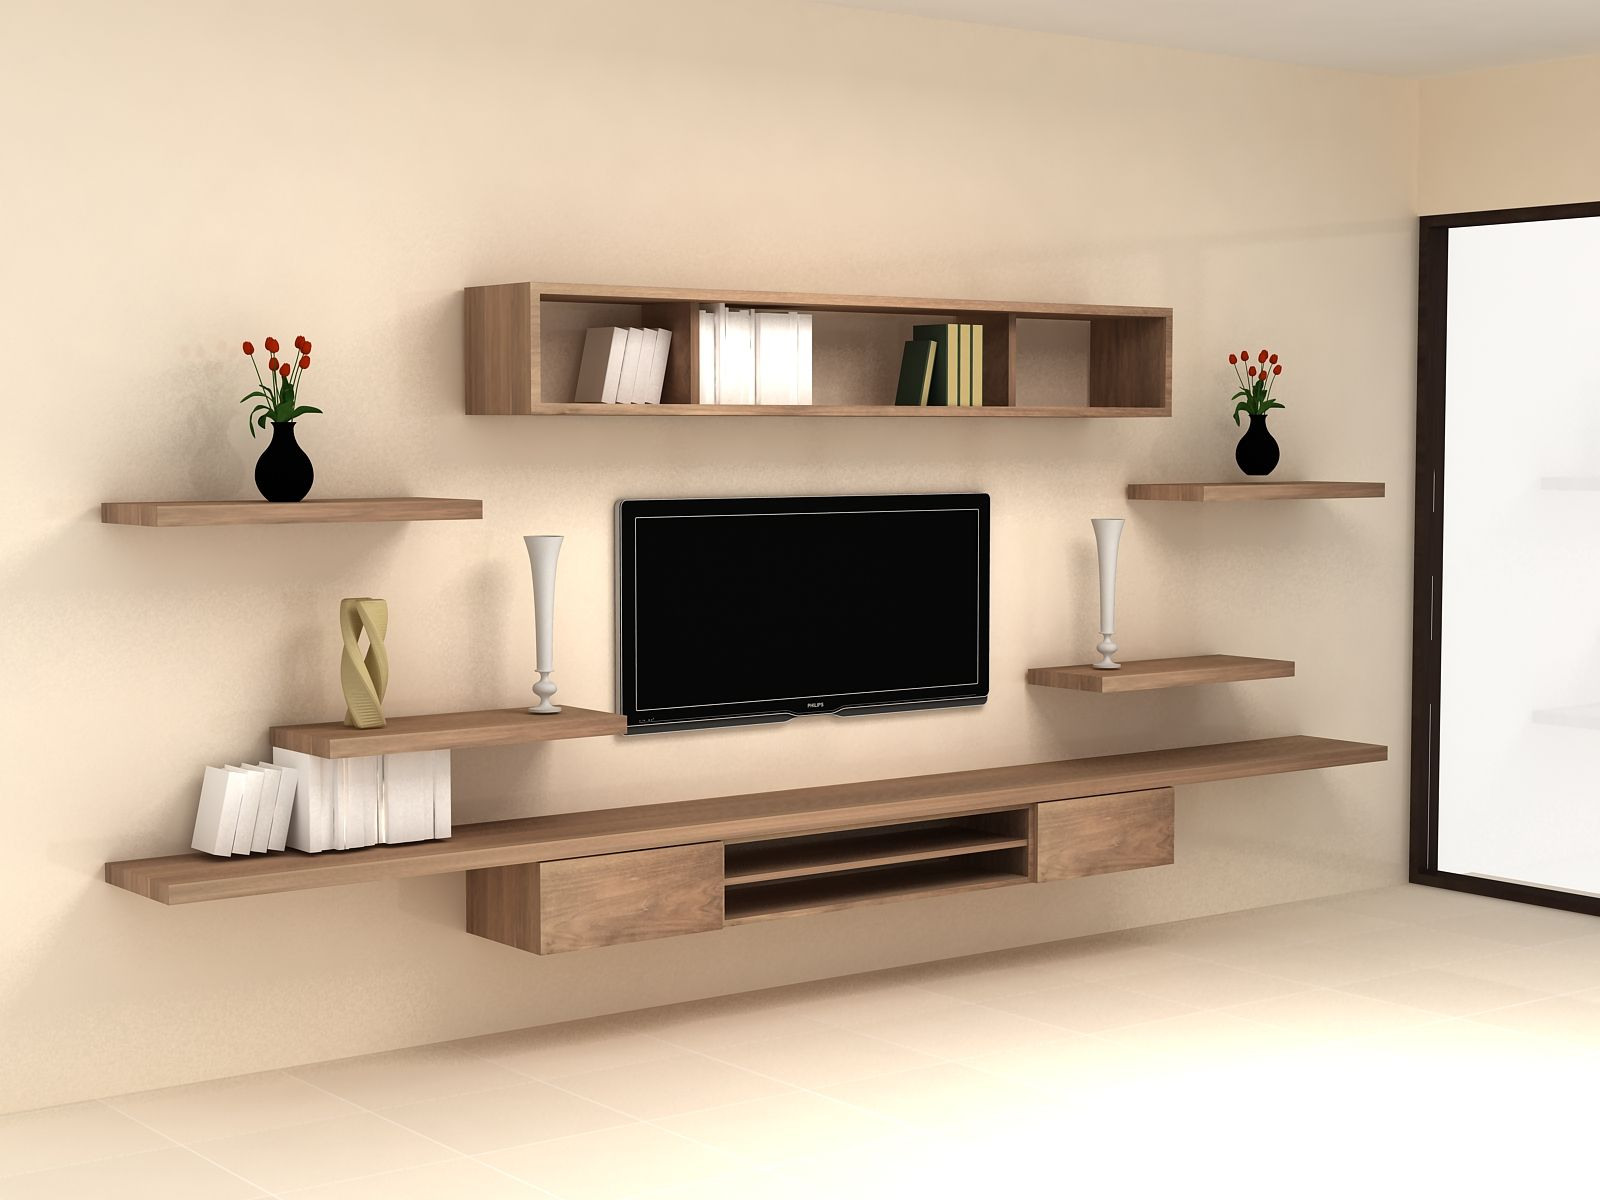 Design Wall Mounted Tv Cabinet : Wall hung tv cabinet pinteres